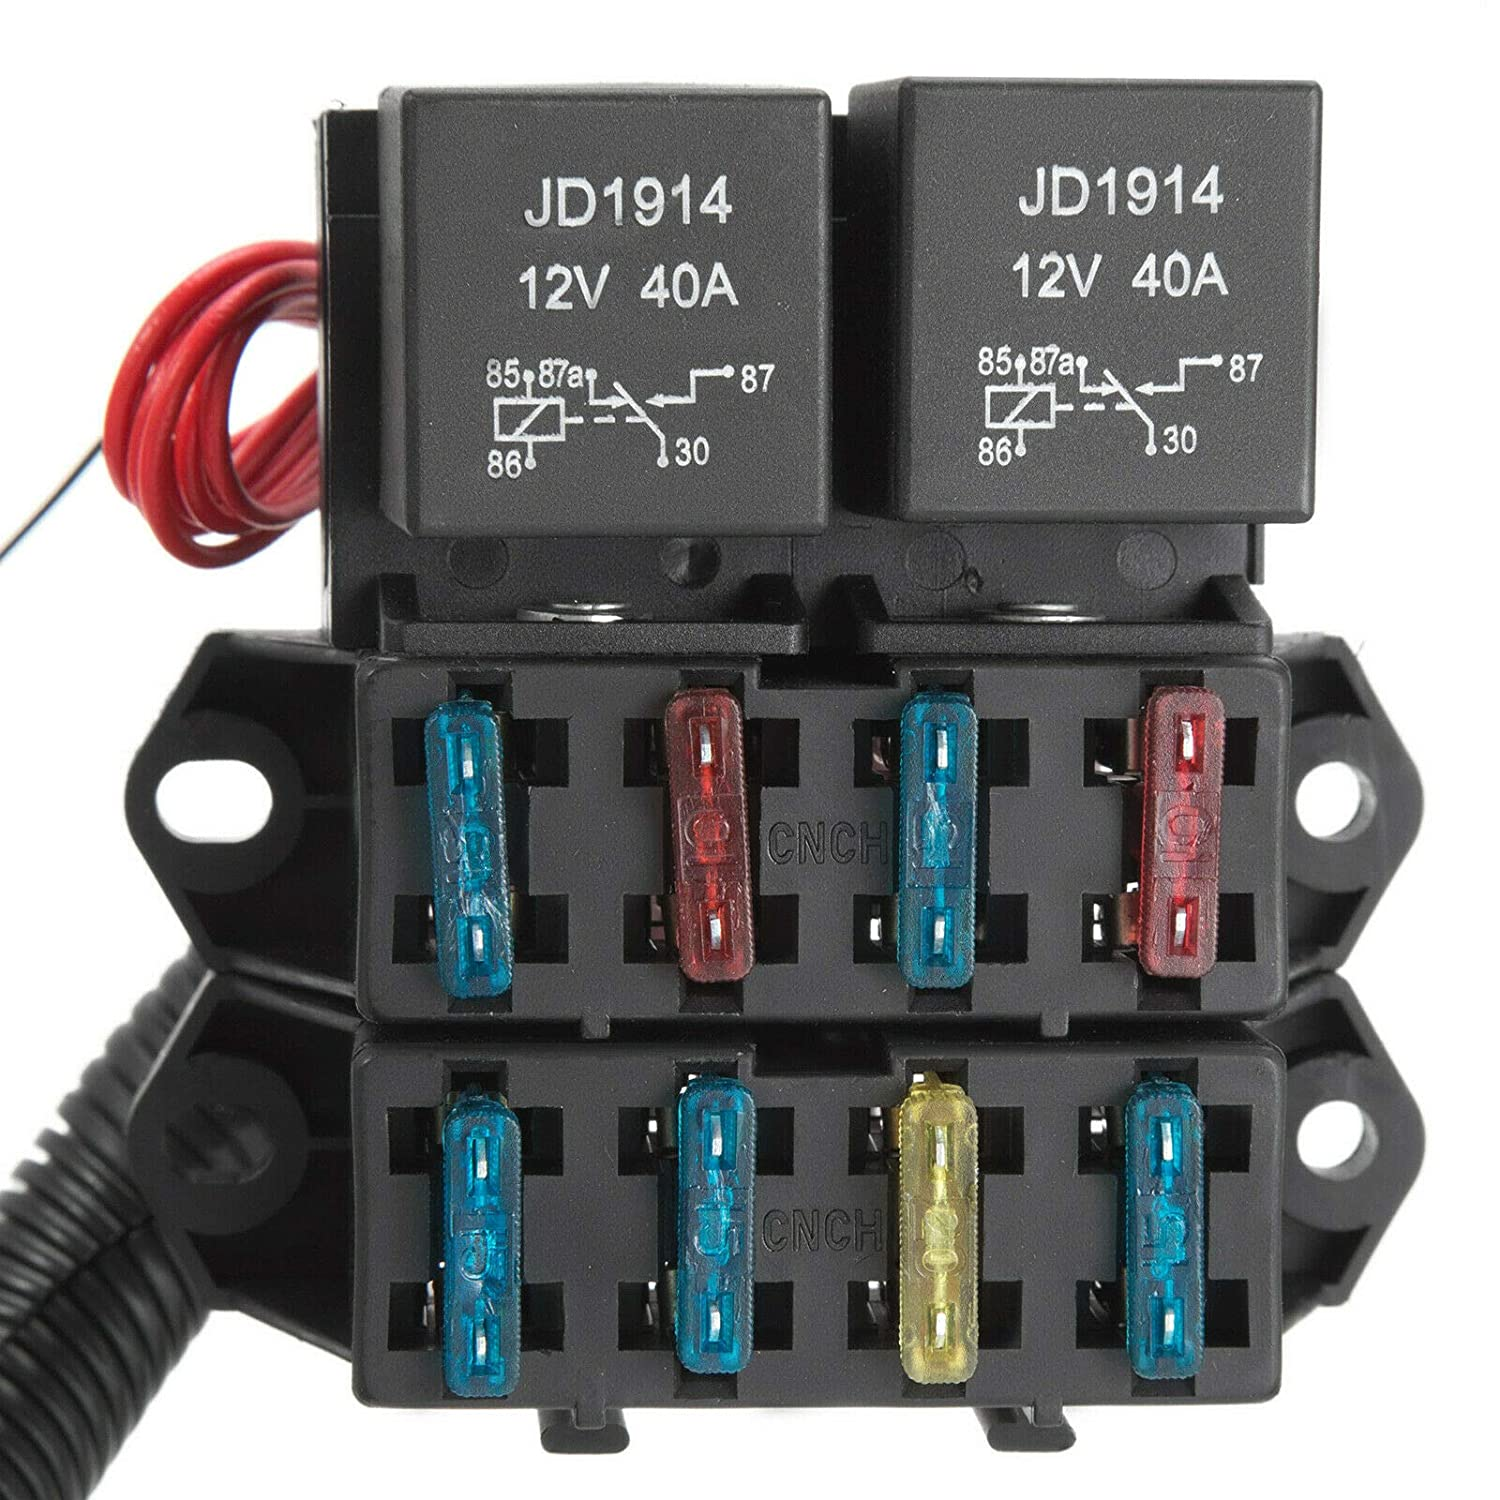 Amazon.com: 03-07 LS Vortec Standalone Wire Harness Drive by ... on